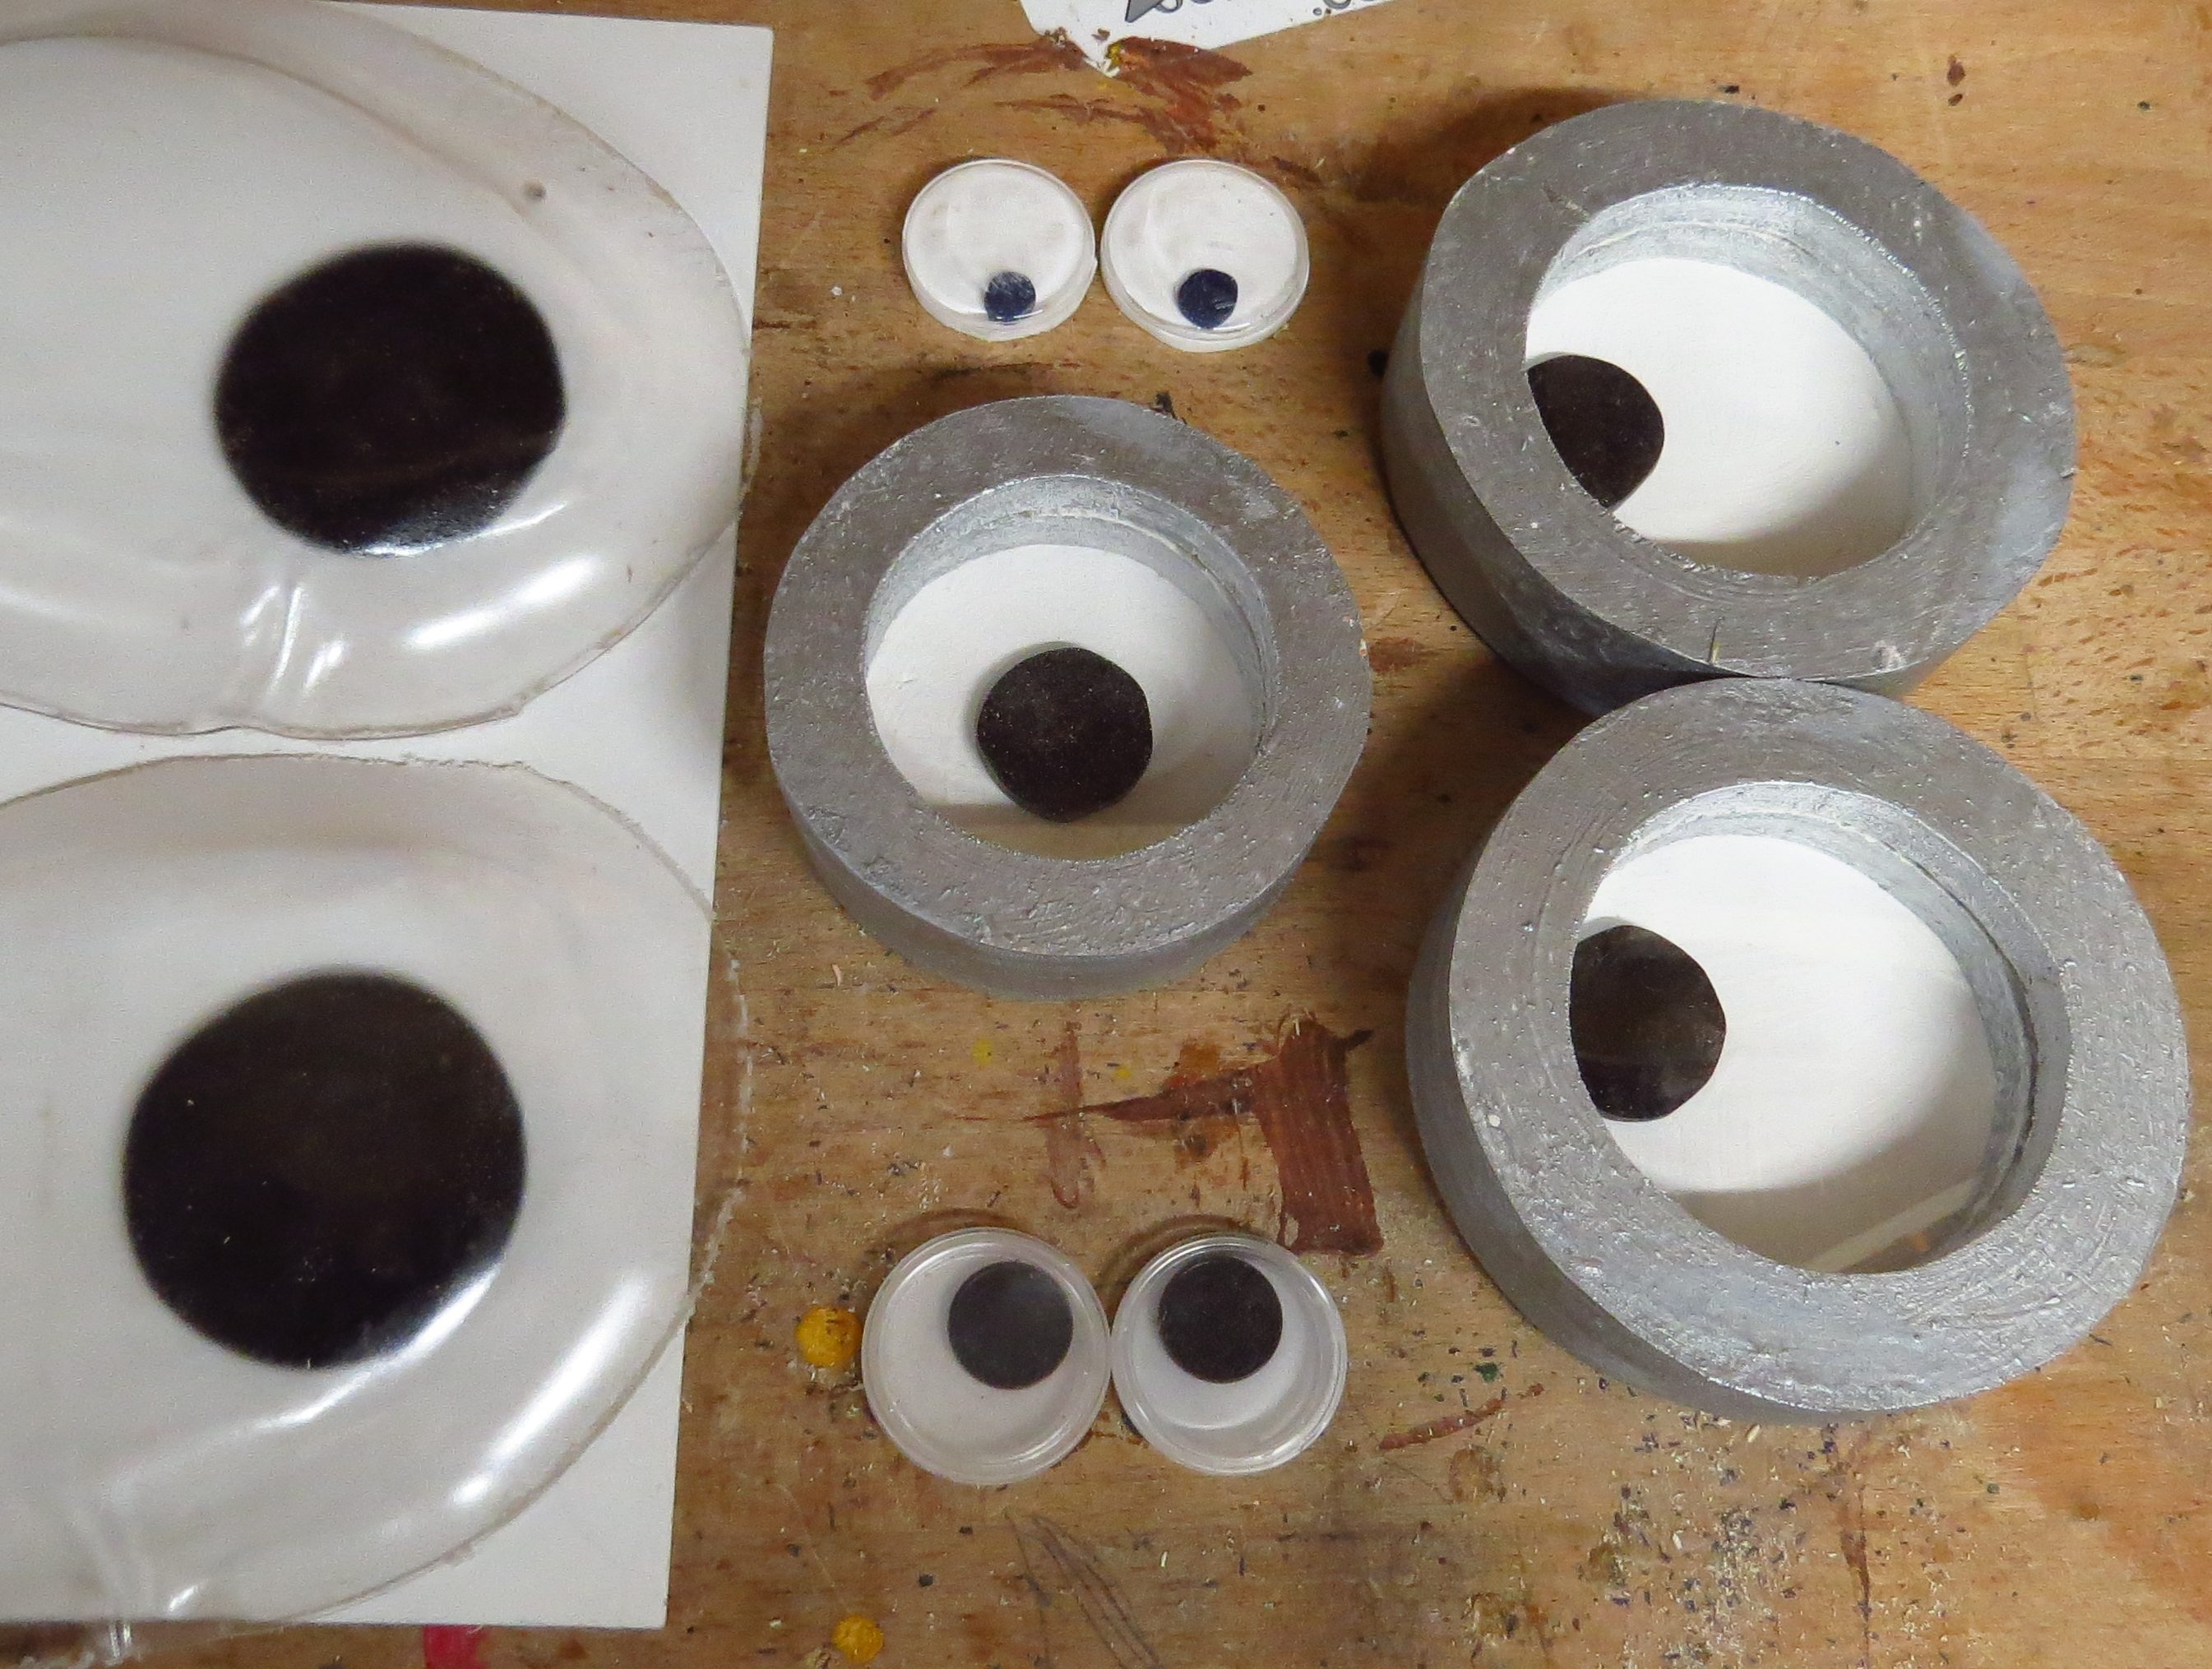 Googly eyes galore!